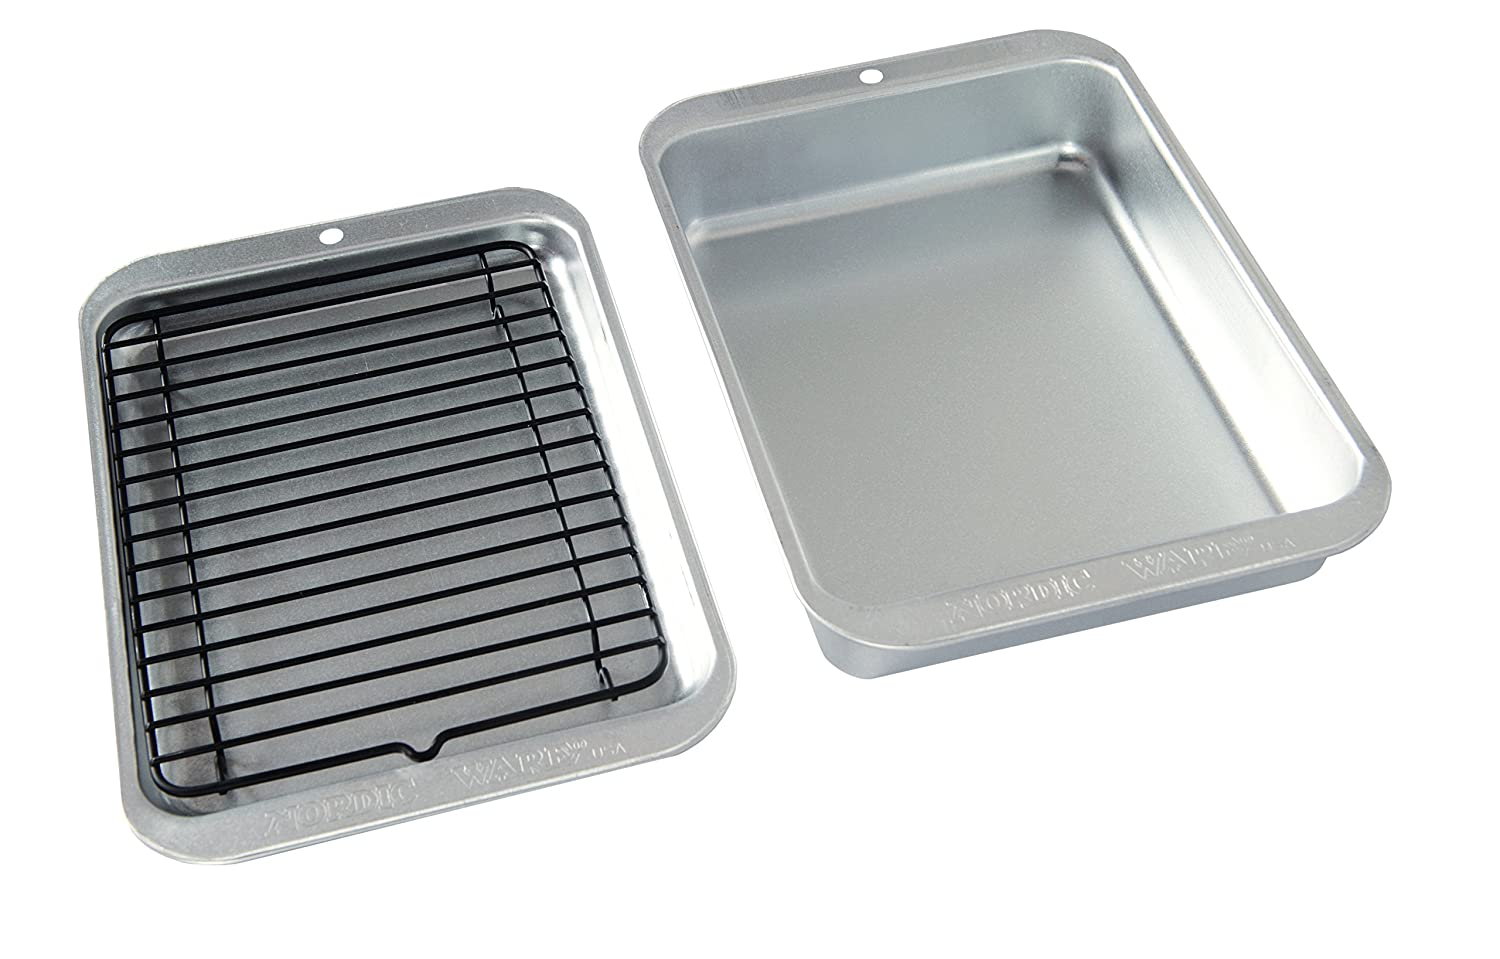 Nordic Ware 43290 3 Piece Naturals Compact Grill and Bake Set Silver